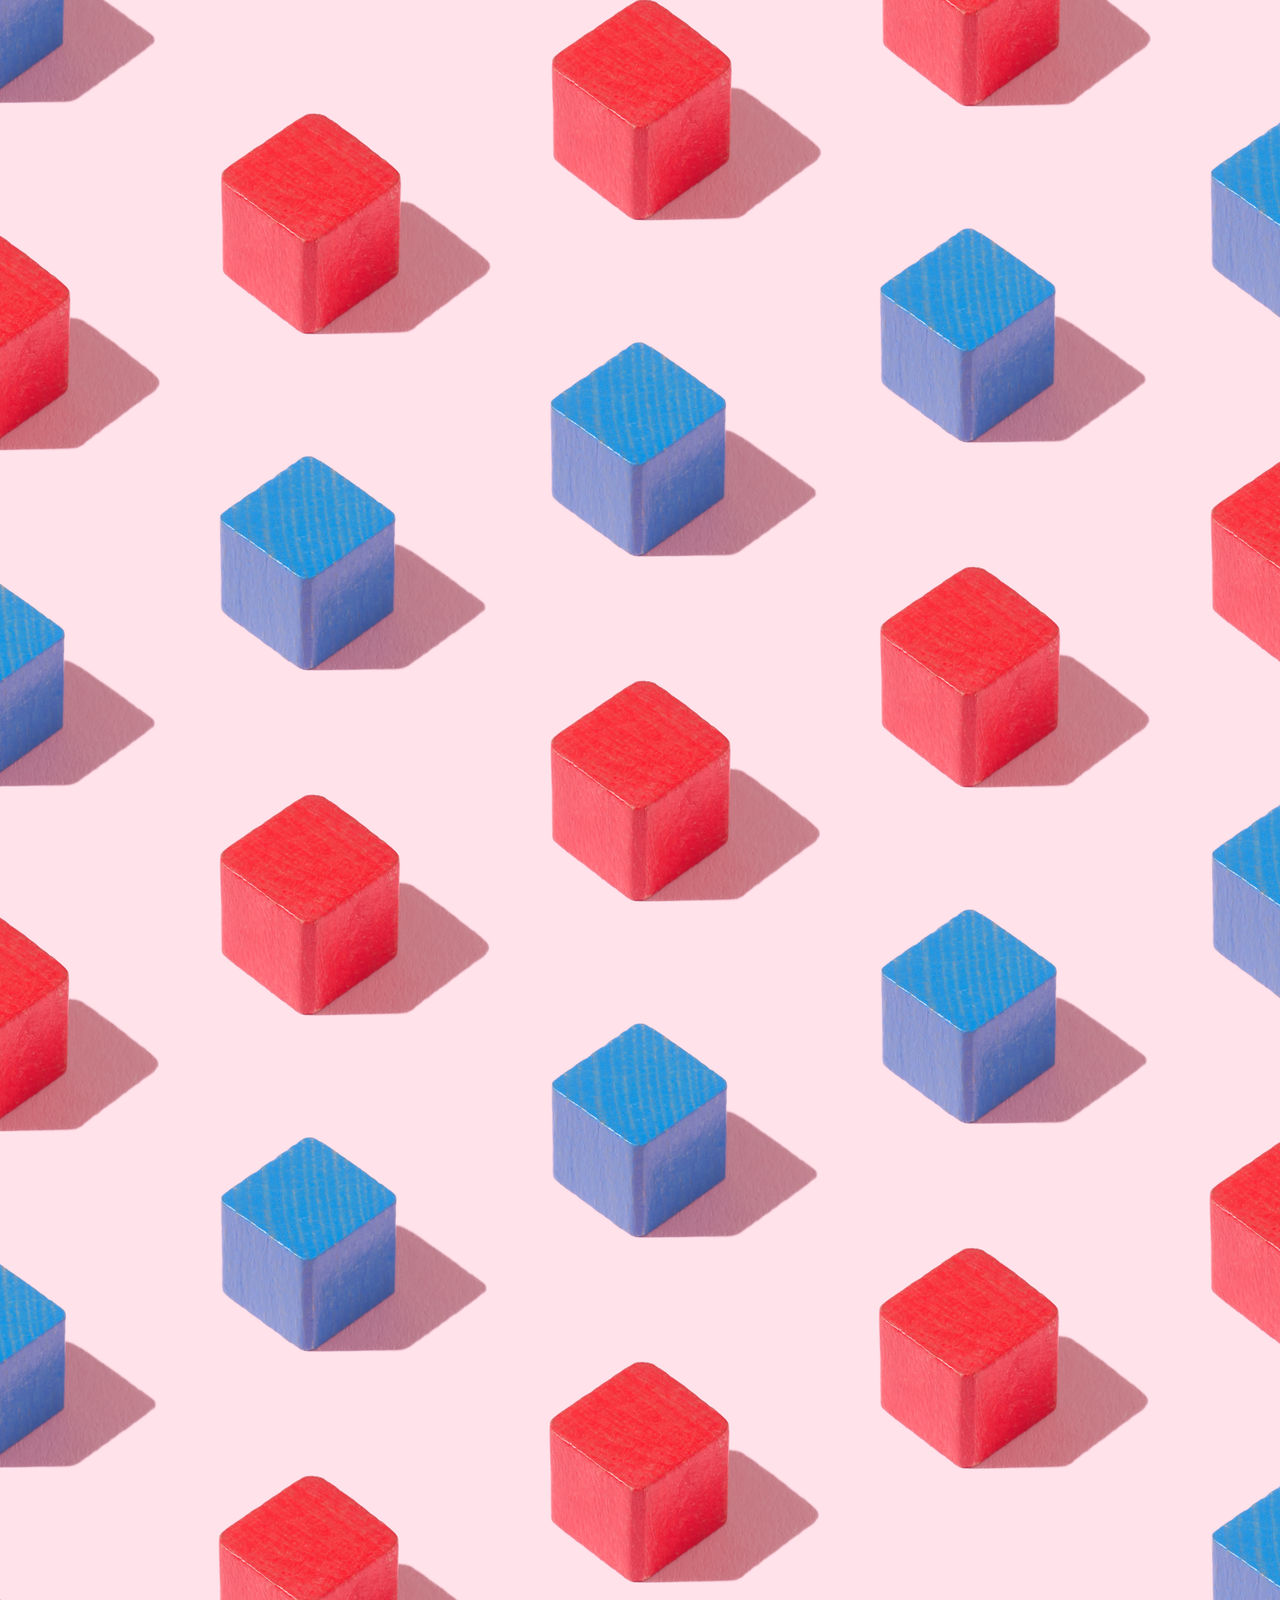 Blue and red wooden cubes organized over pink background Block Blue Color Box Childhood Toys Colorful Colors Conceptual Construction Cub Cubism Geology Harsh Shadow In A Row Object Organized Organized Neatly Pink Background Red Color Shape Square Things Organized Neatly Wood Wooden